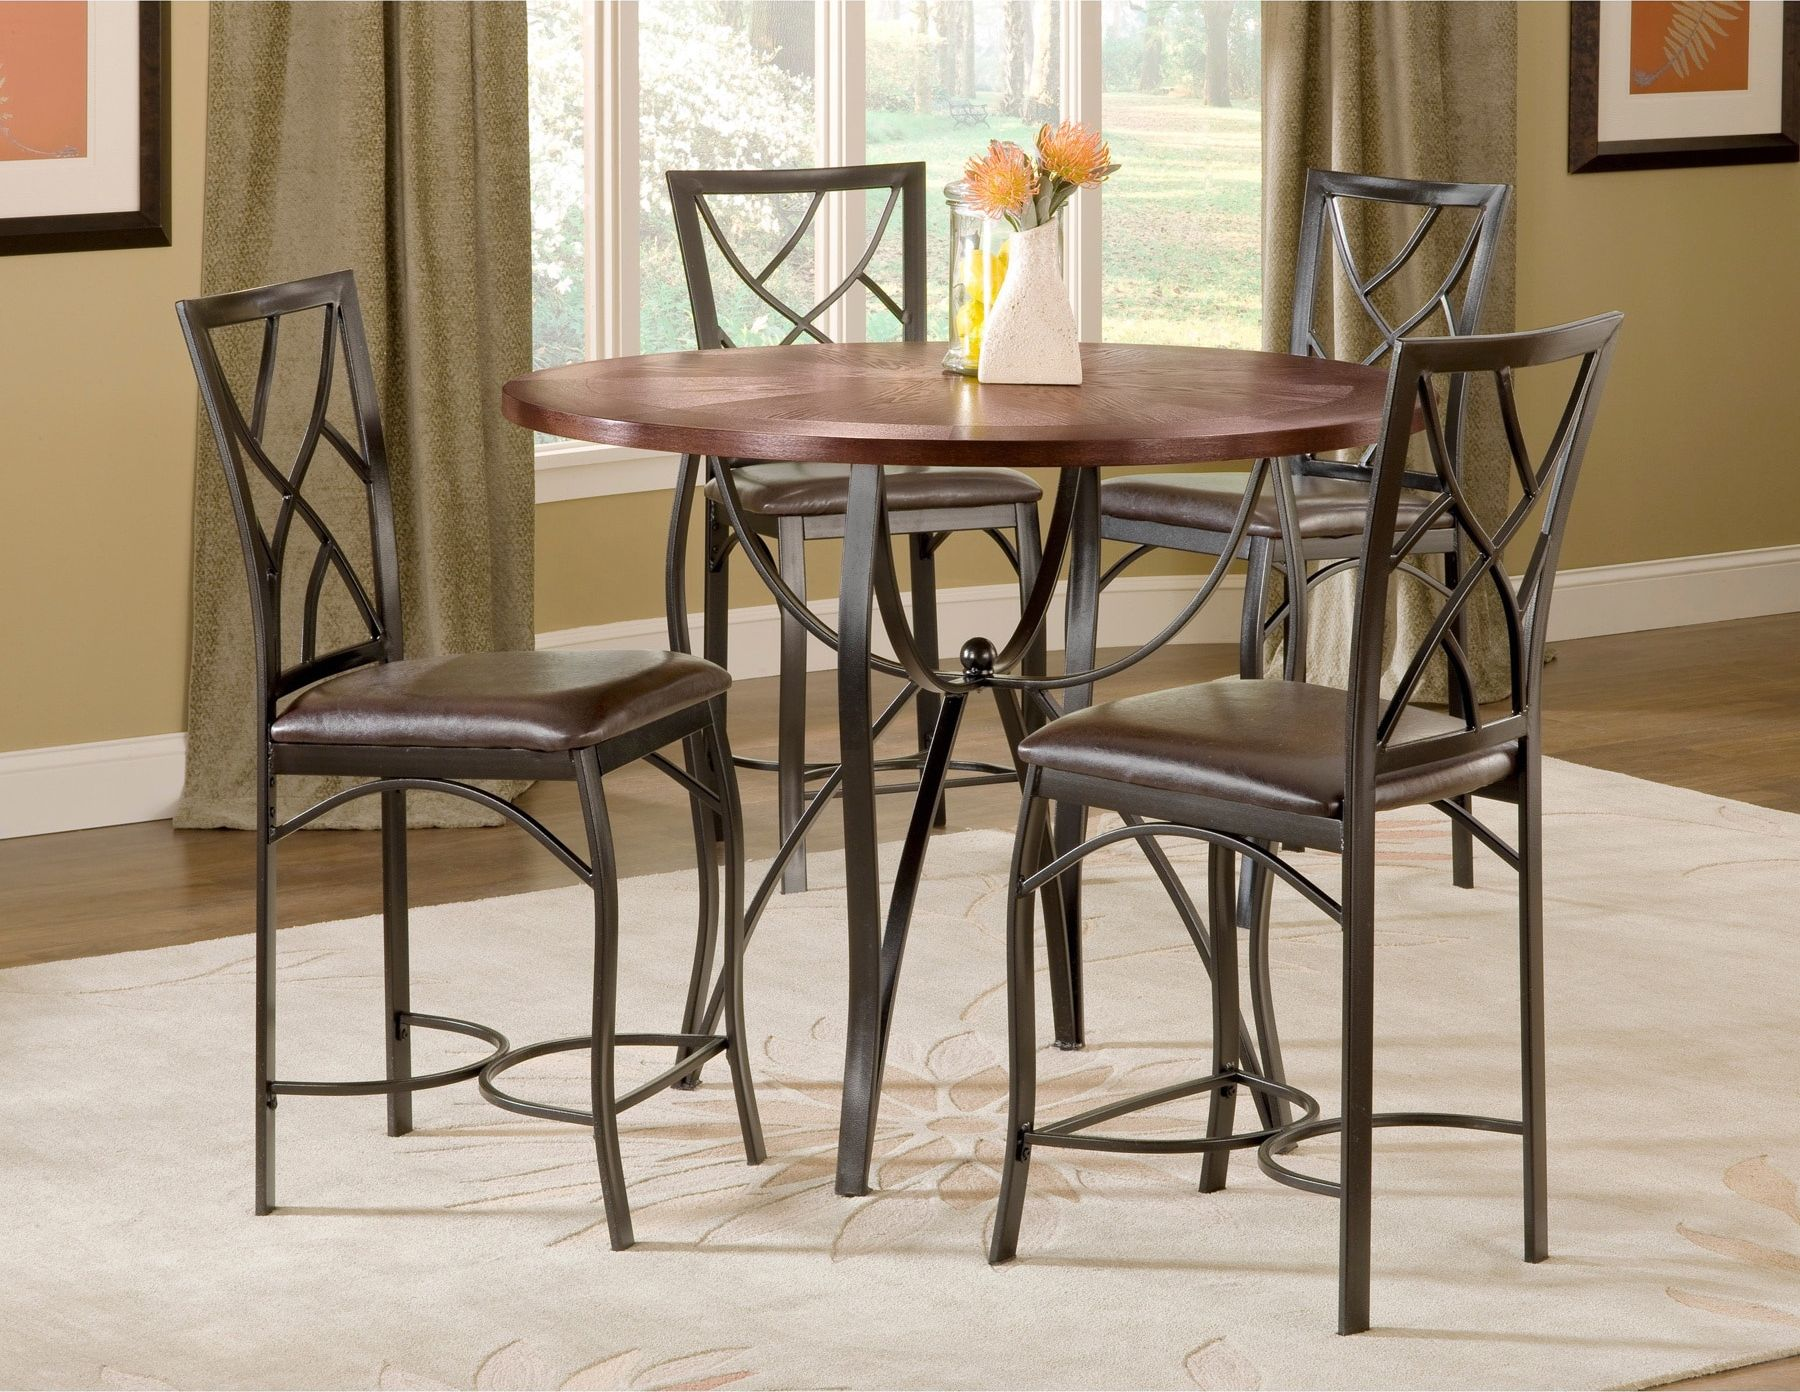 Sanford Merlot 5 Piece Counter Height Table And 4 Chairs Black Metal Round Dining